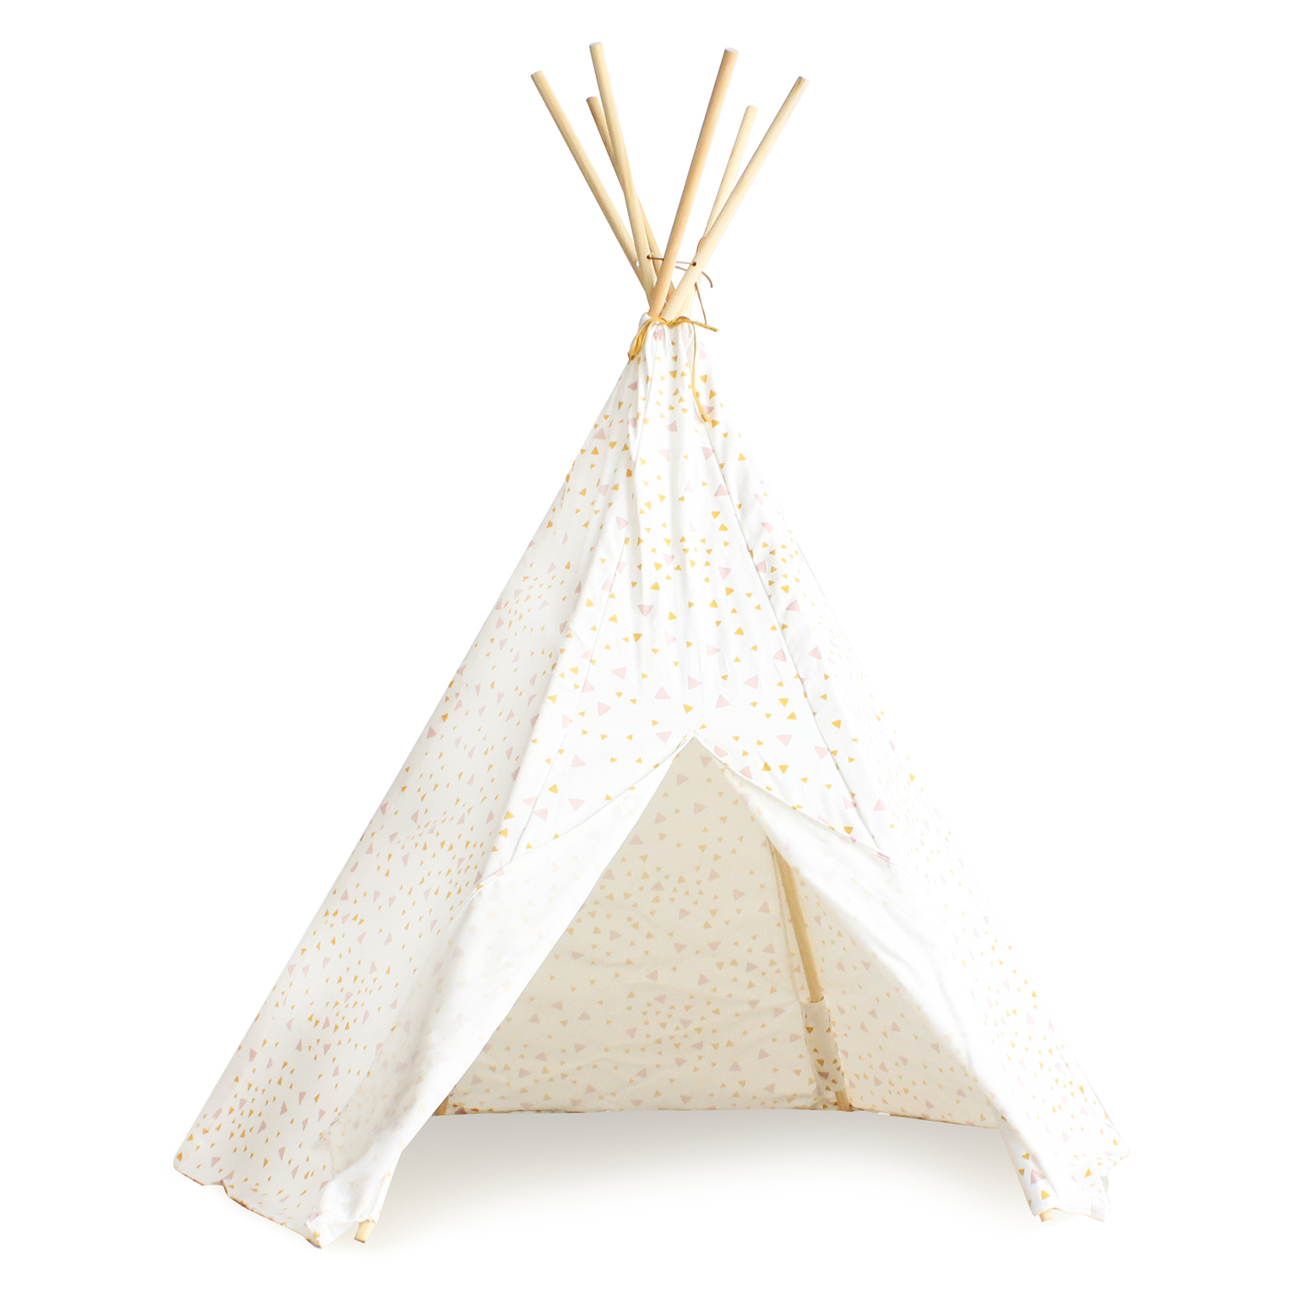 tipi arizona eclairs rose jaune nobodinoz pour chambre enfant les enfants du design. Black Bedroom Furniture Sets. Home Design Ideas